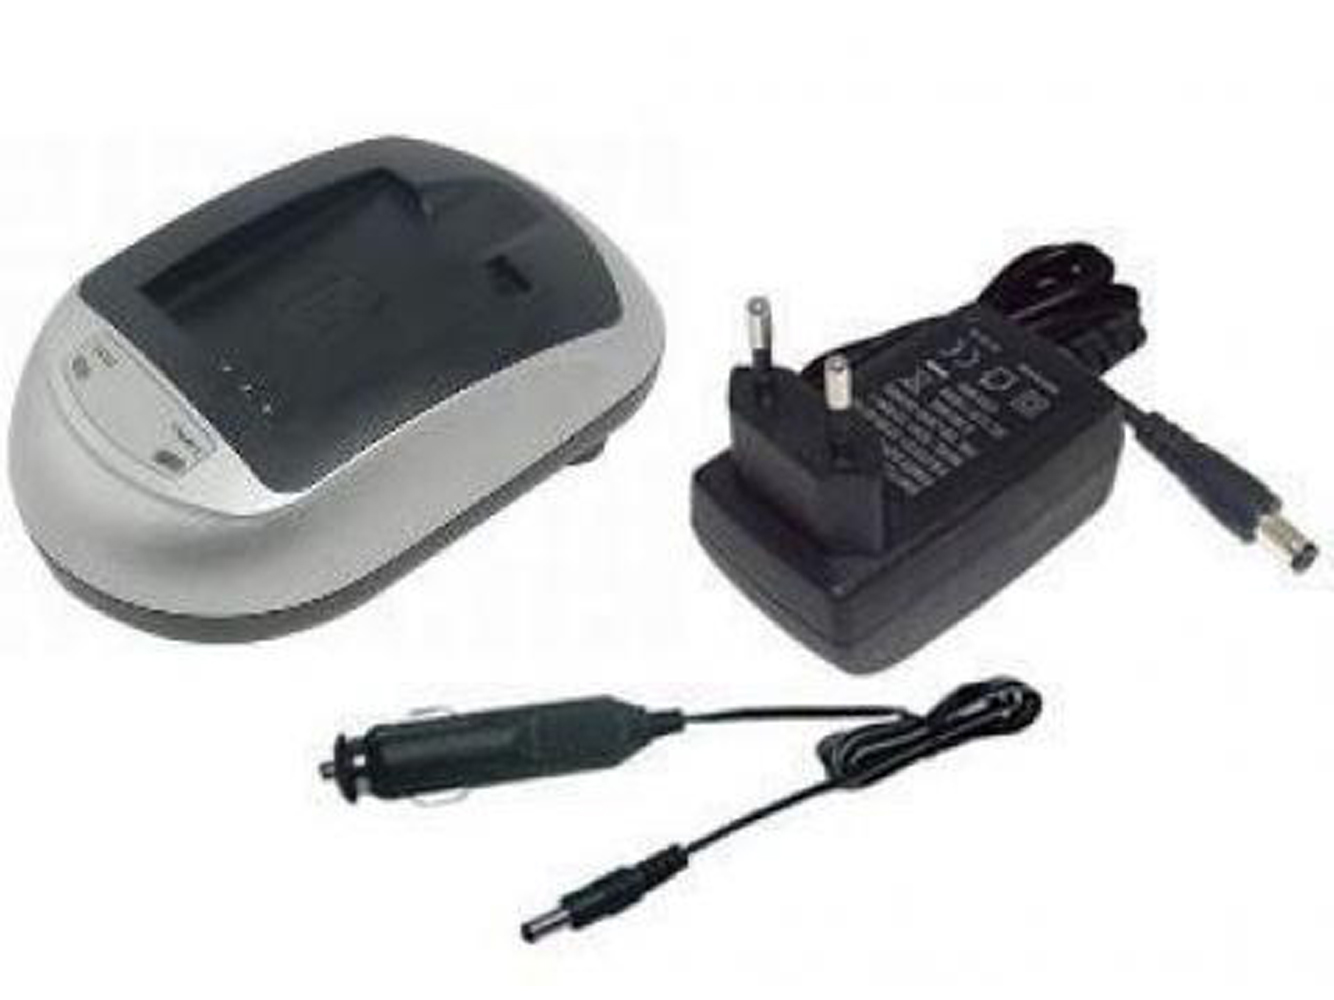 Battery Charger for SONY BC-TR1, NP-FR1, NP-FT1